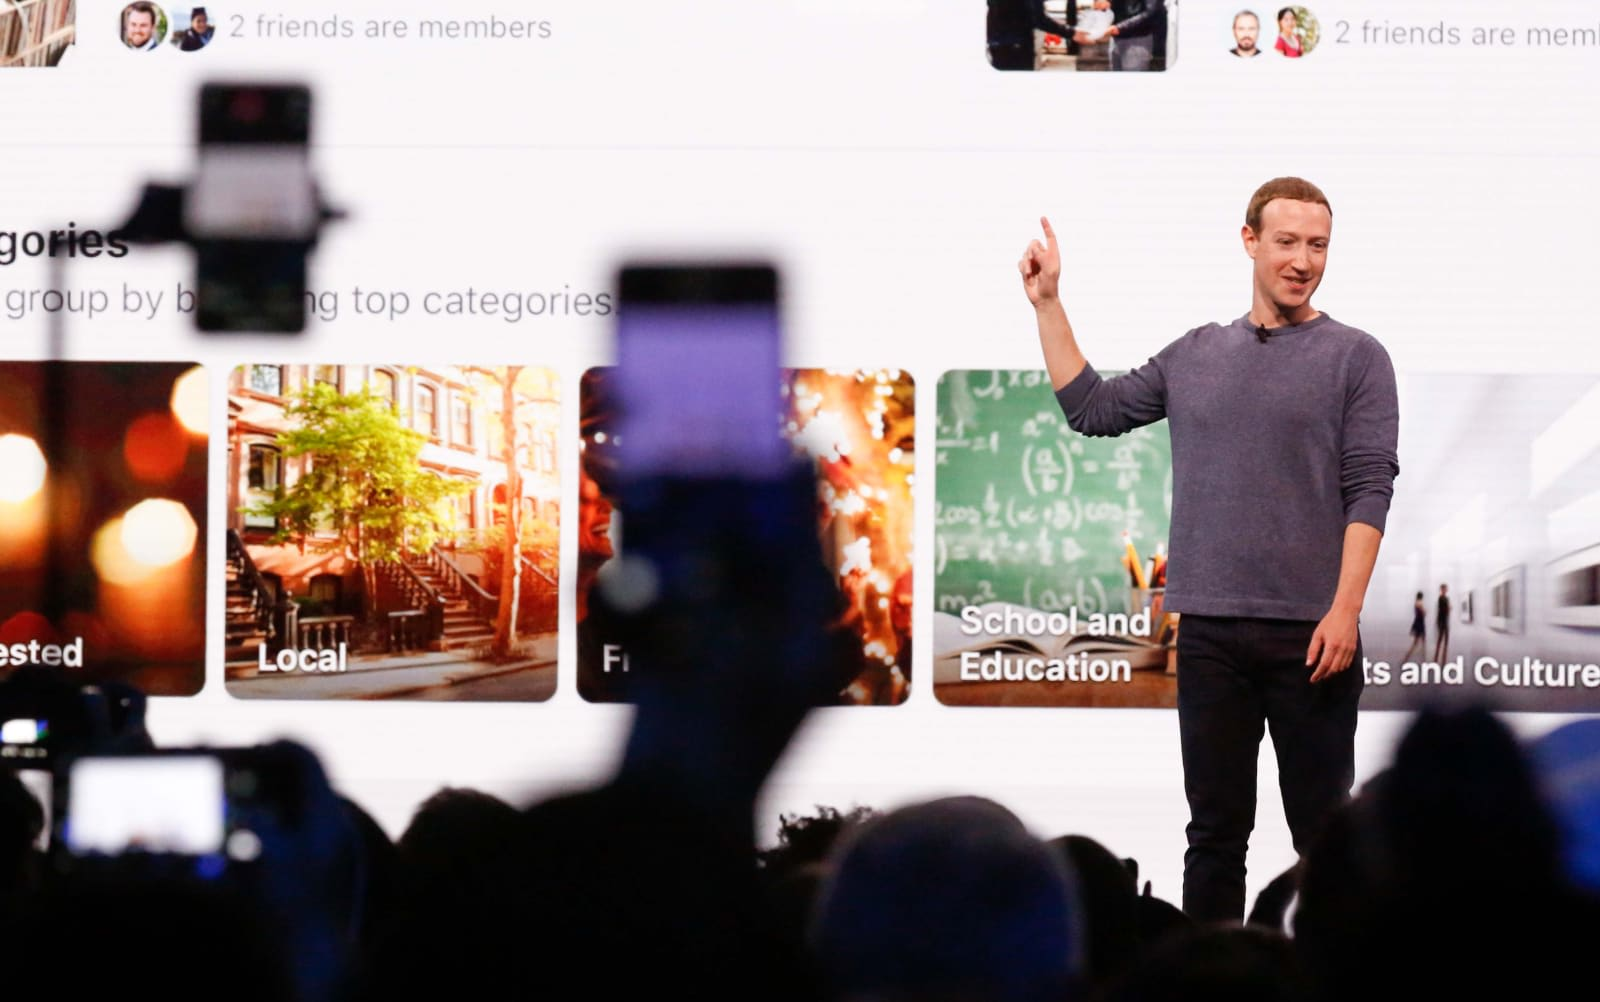 Apple might force Facebook to change how its apps handle voice calls